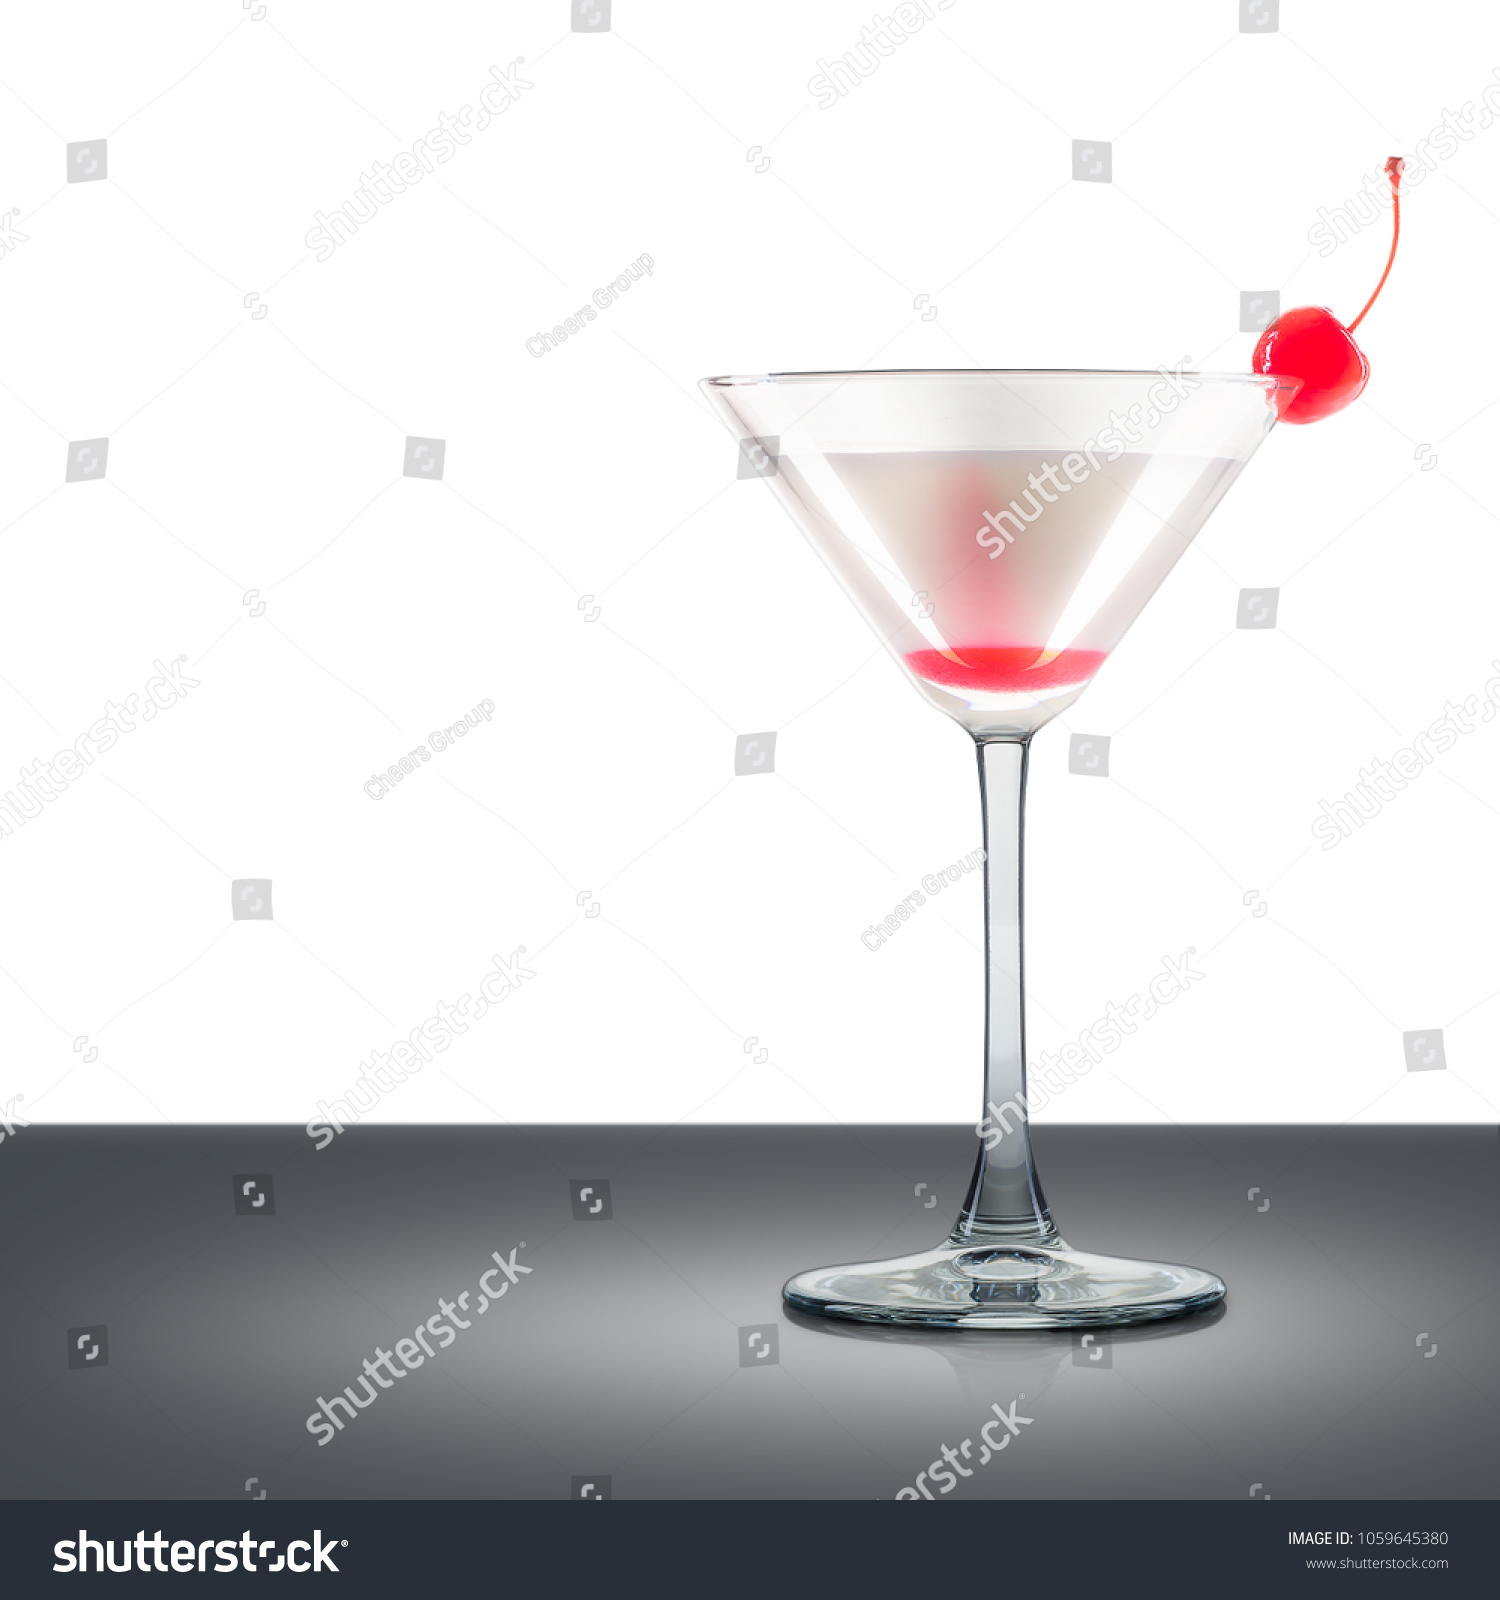 Pina Colada Or White Russian Cocktail In Martini Glass With